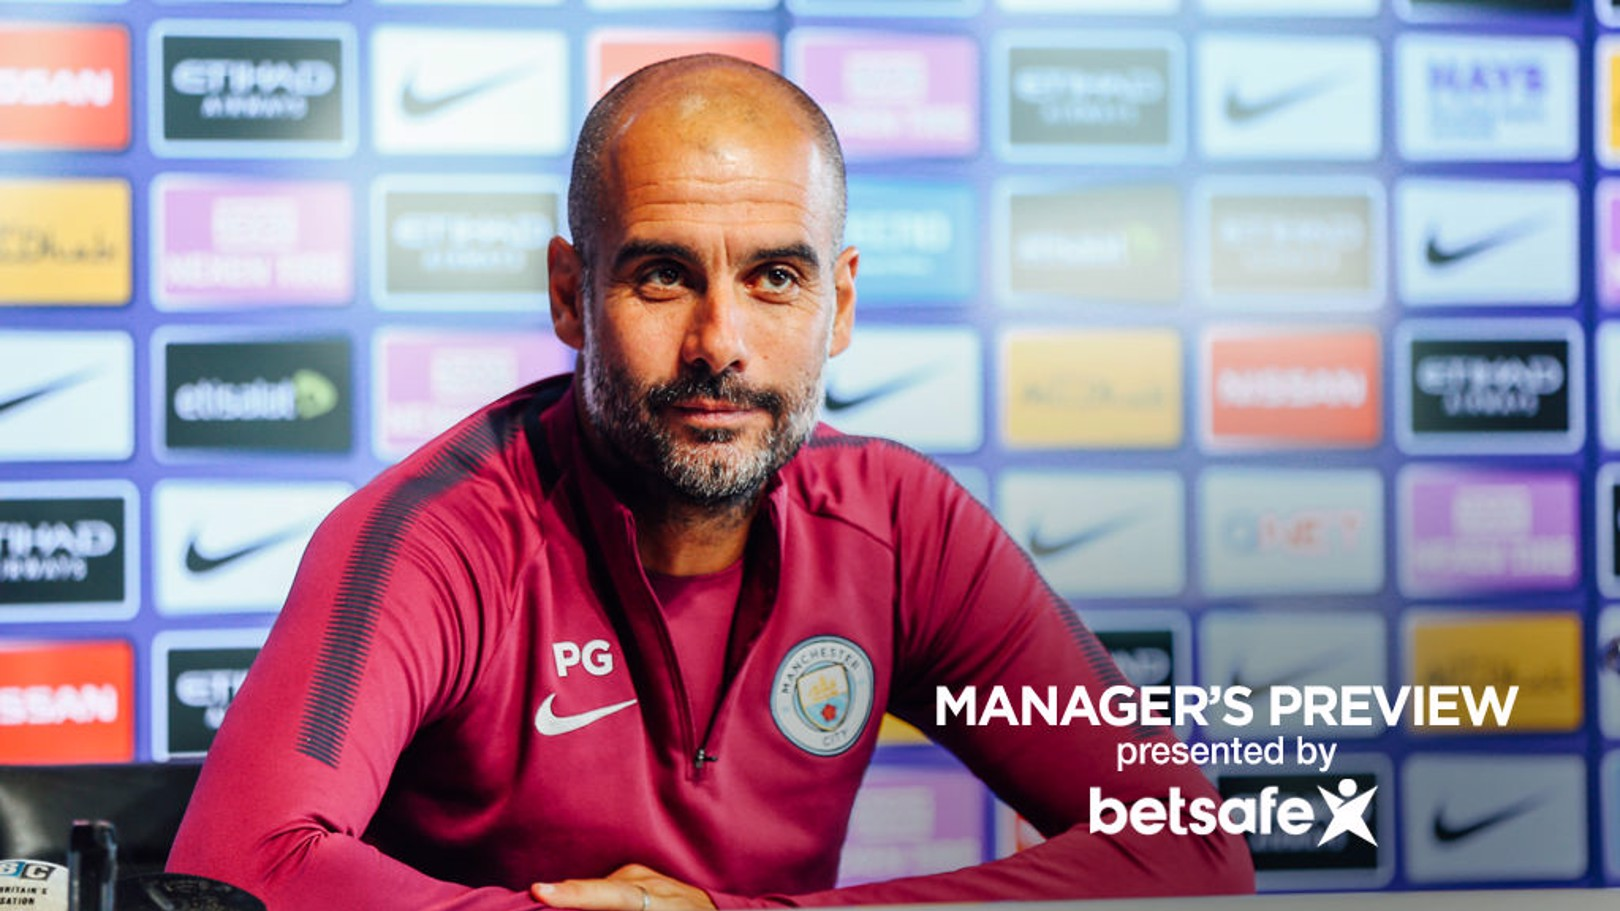 LATEST: Guardiola has given us an update on the fitness of his squad.